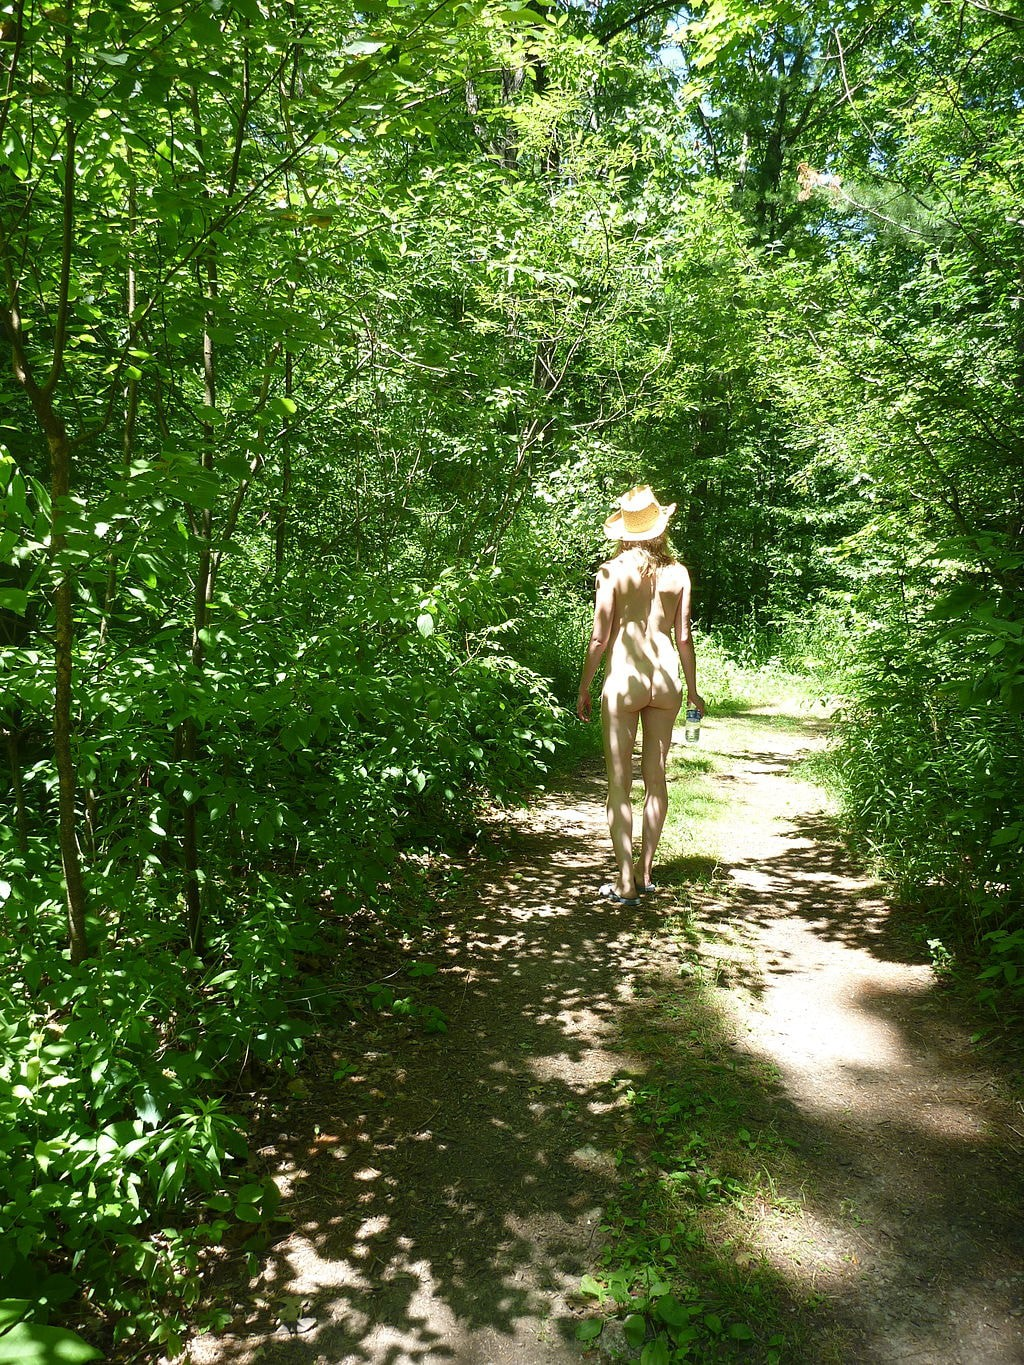 Nudist woman walking in forest